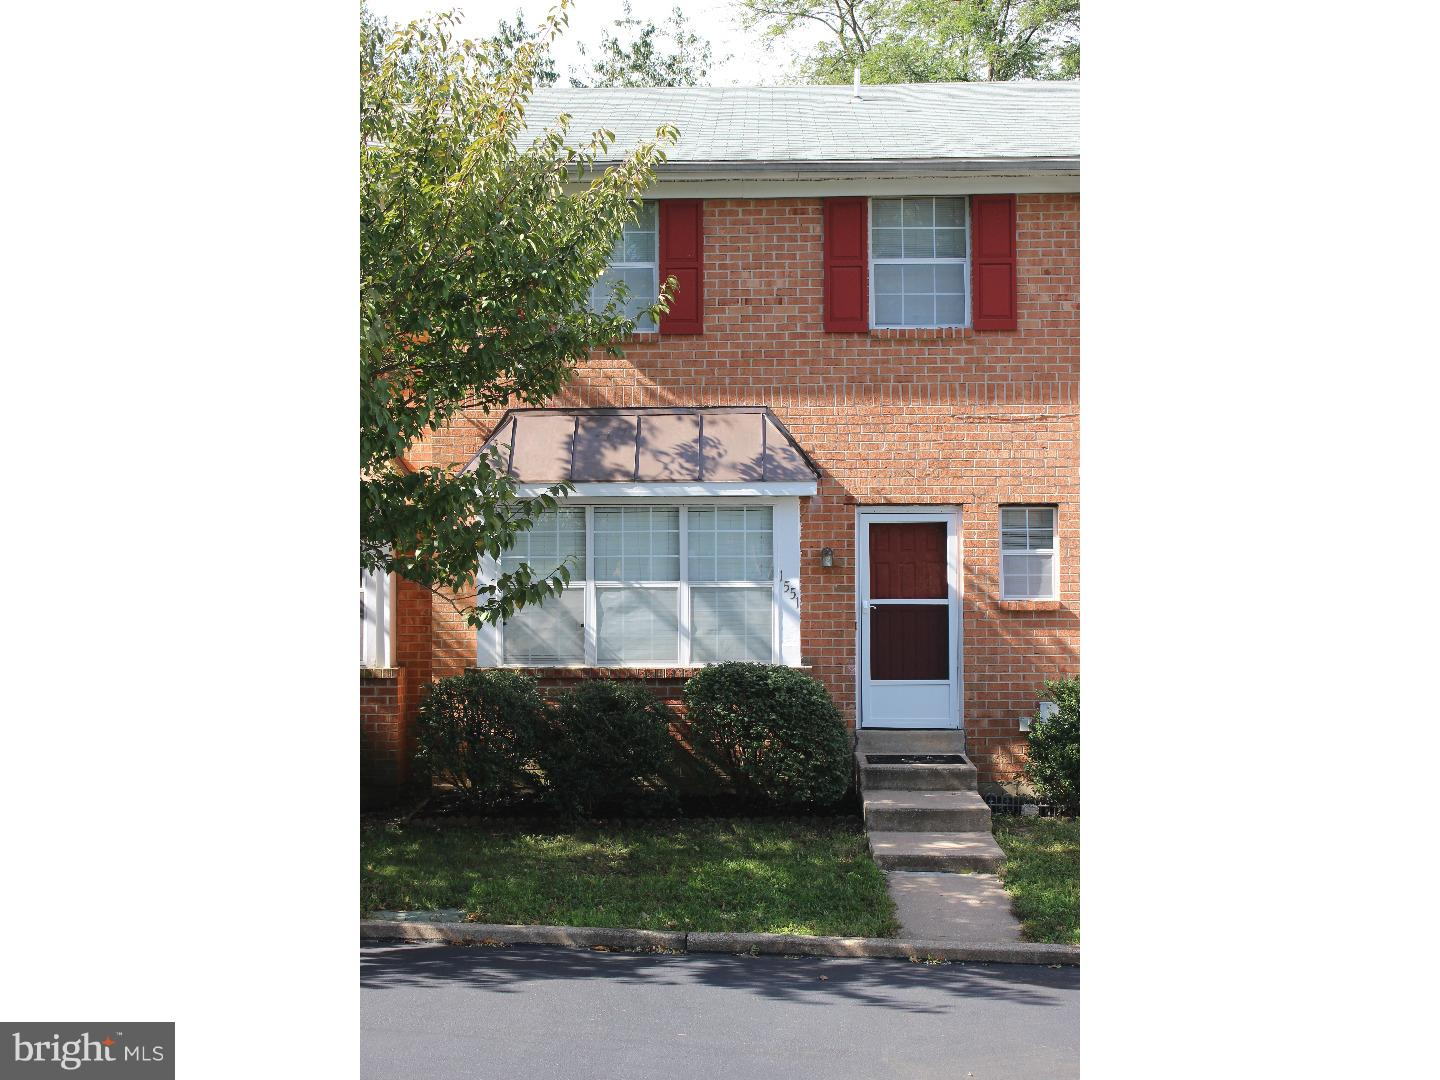 1551 S Coventry Lane West Chester , PA 19382